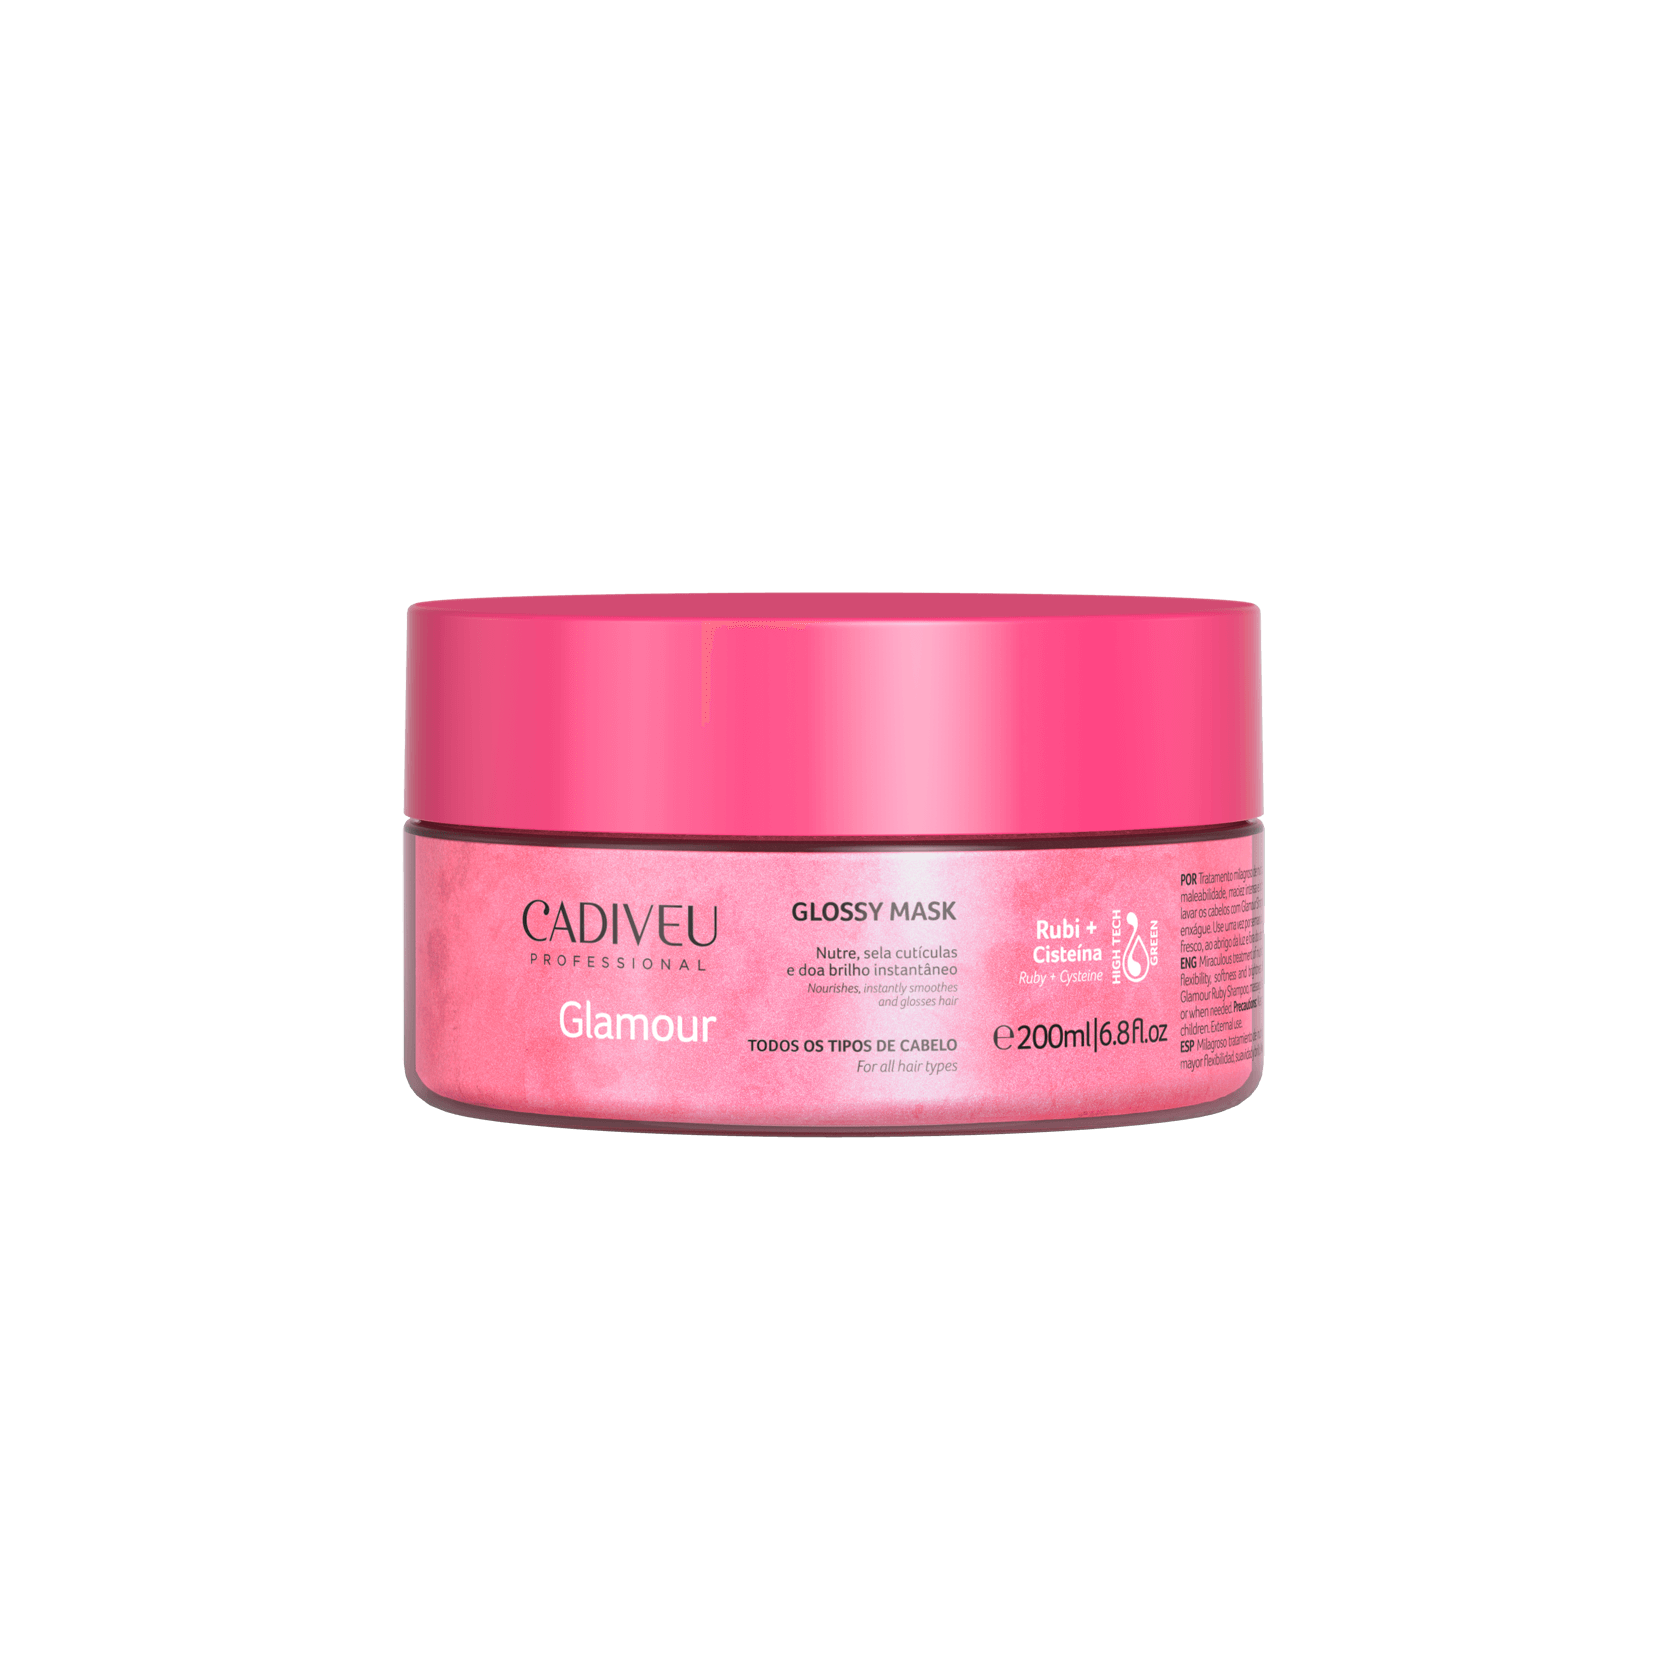 Glamour - Glossy Mask 200 Ml